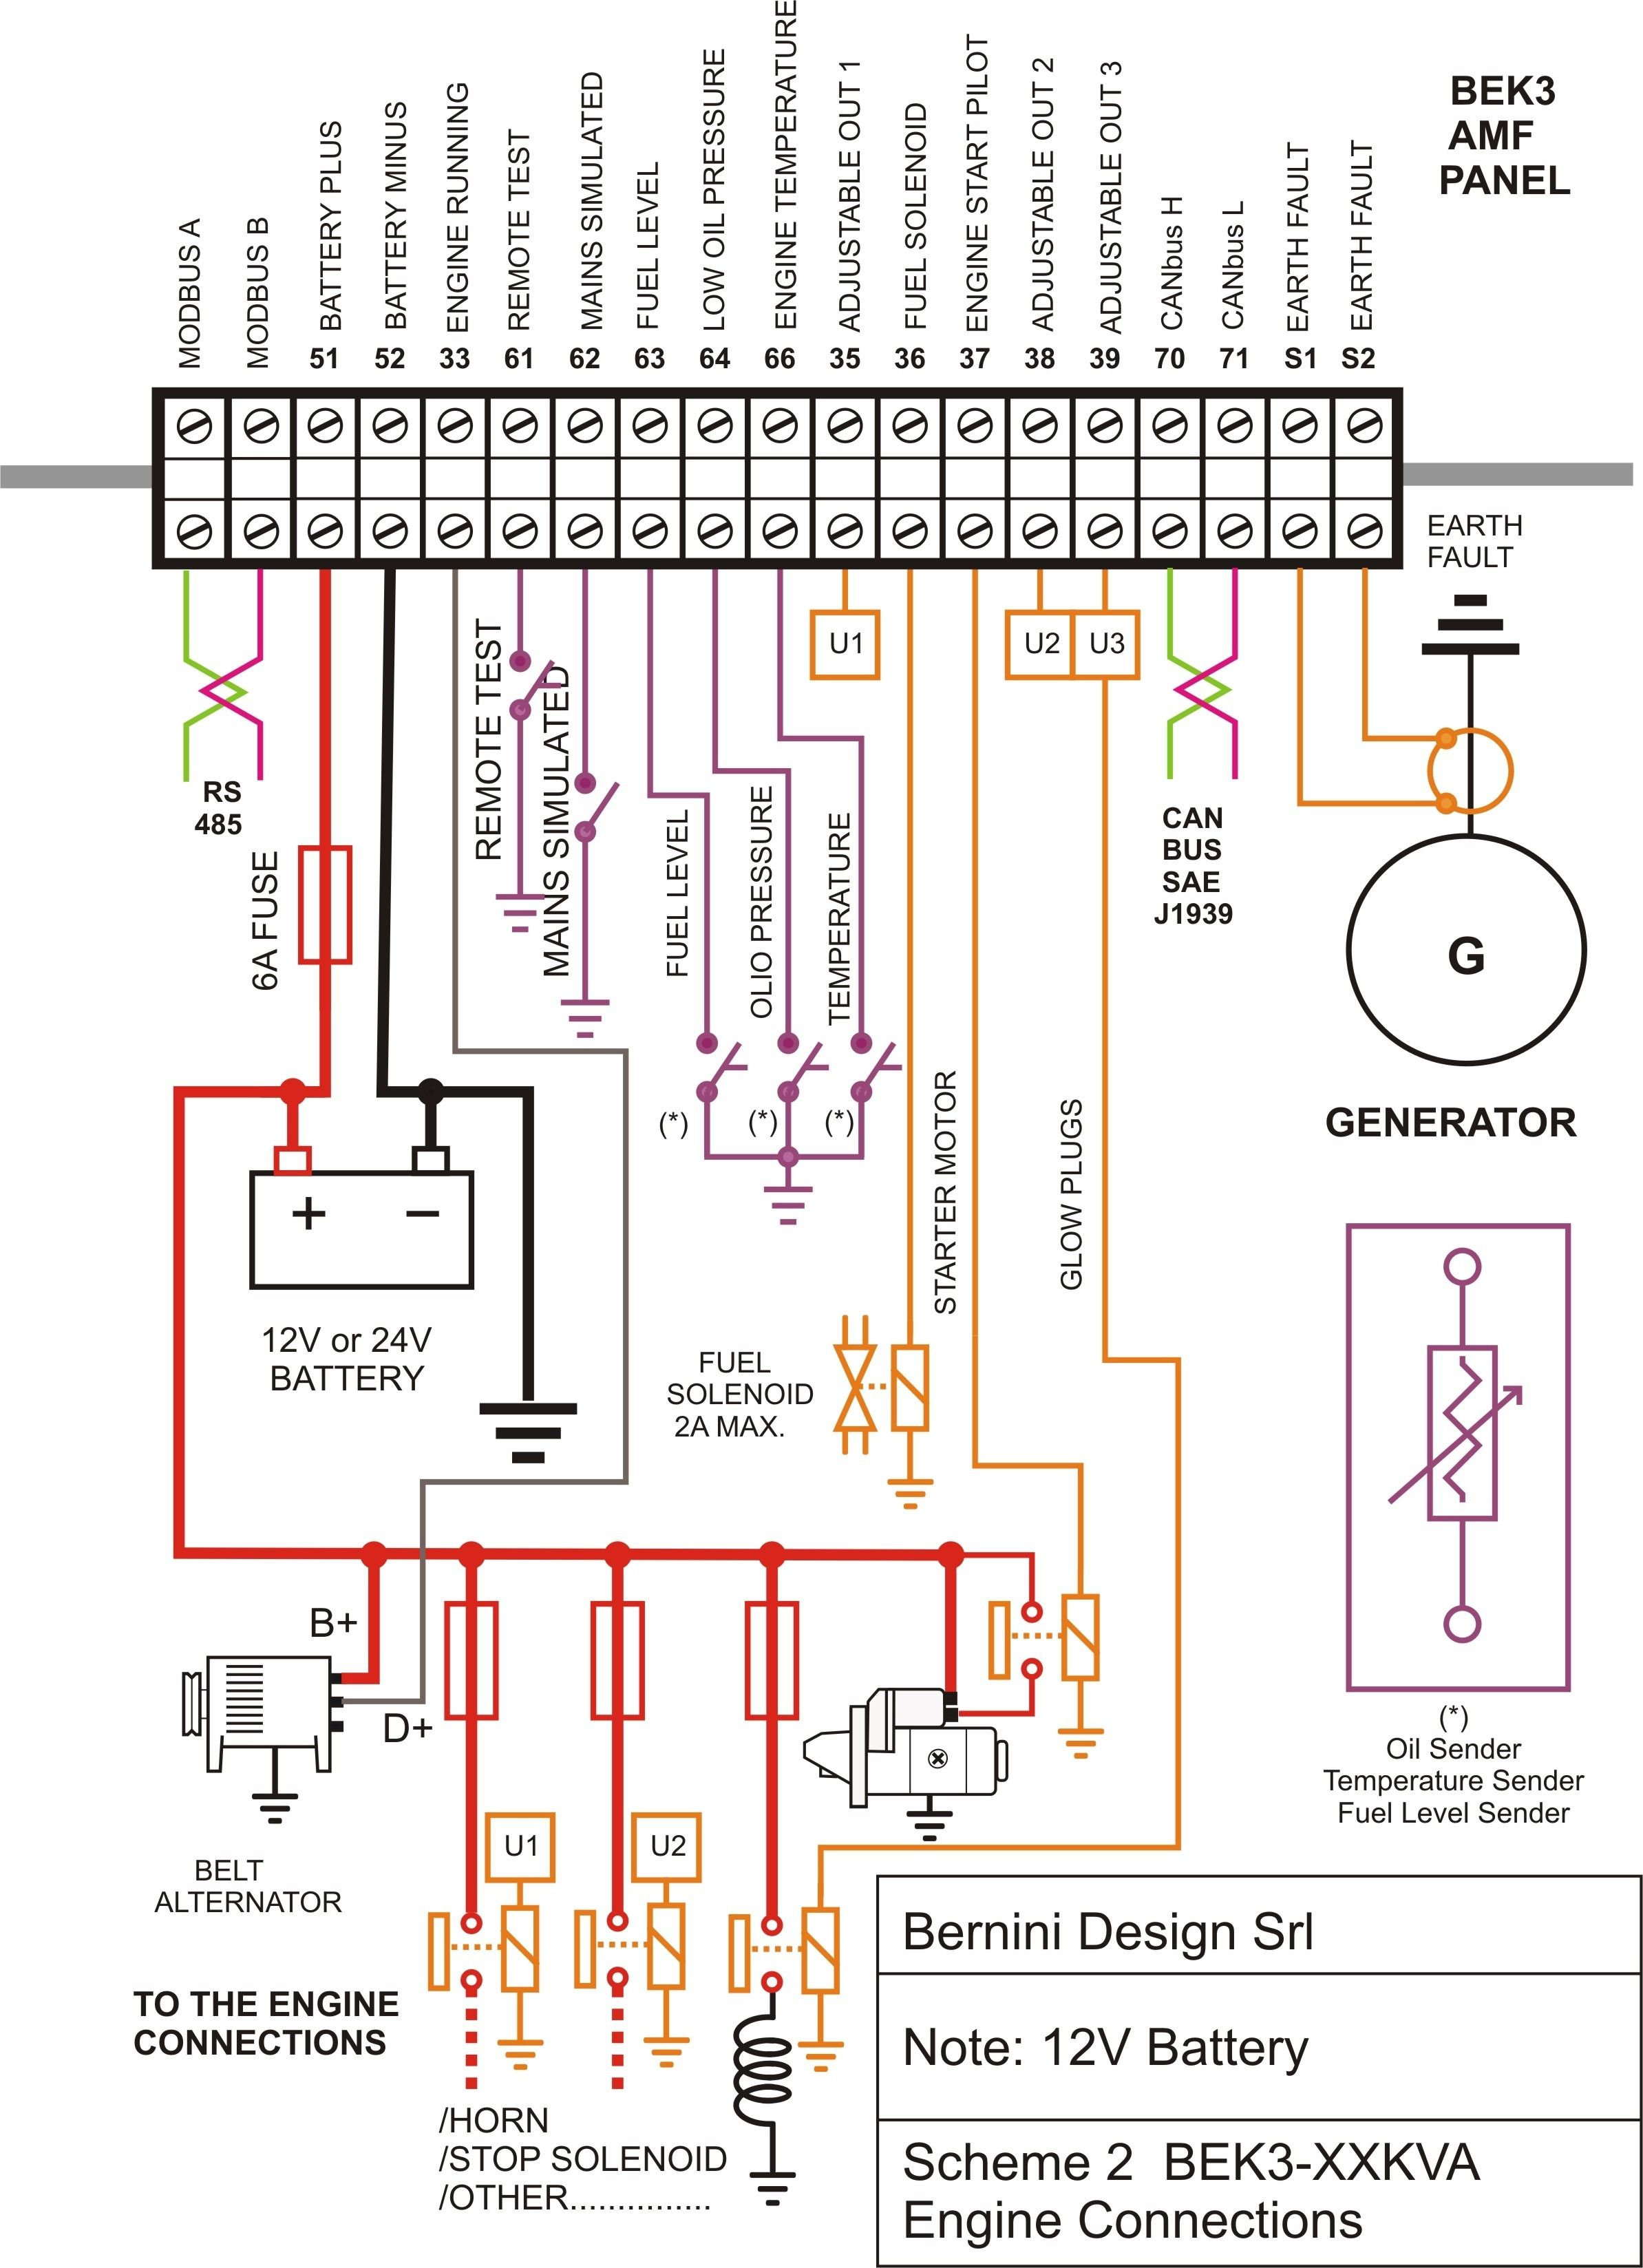 basic electrical wiring diagram pdf | wiringdiagram.org ... 1988 ford f 350 diesel engine wiring diagram #12